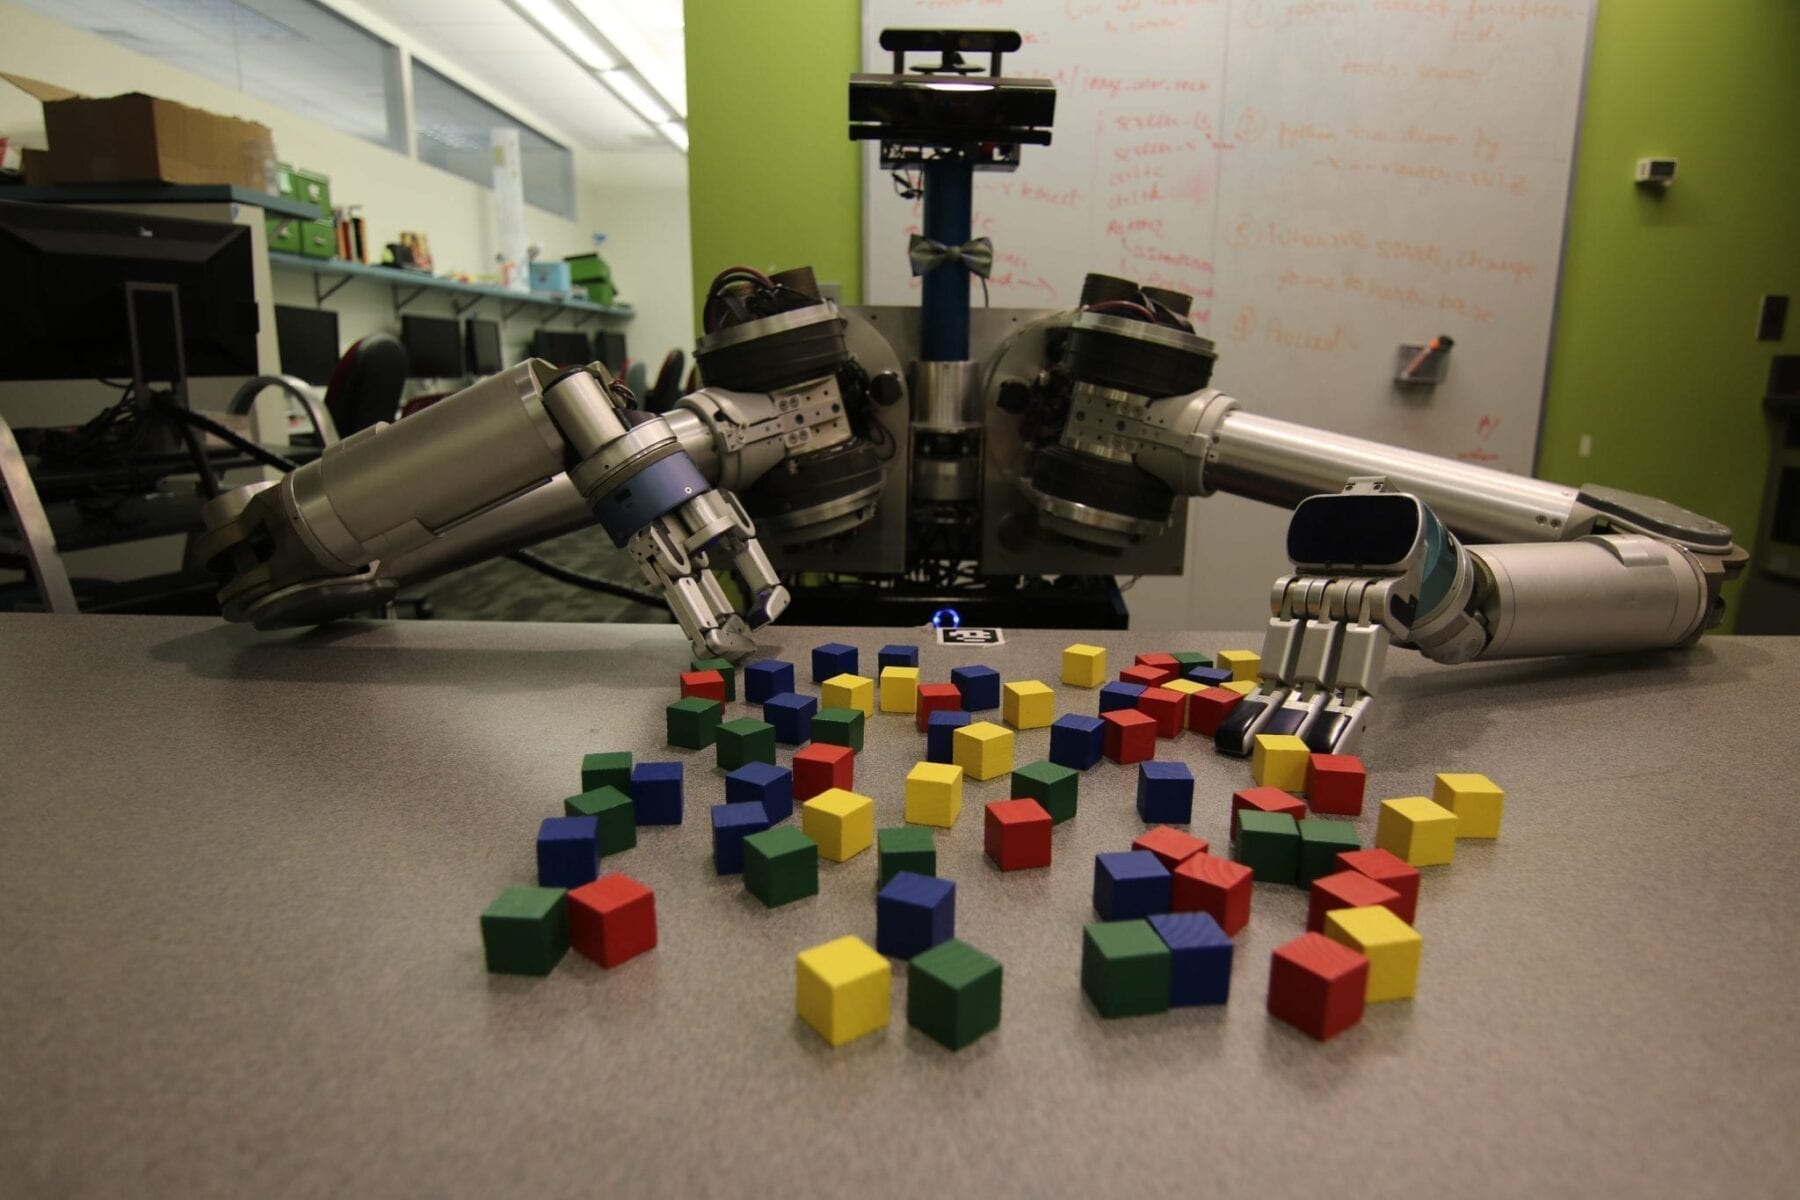 Robots Get Creative To Cut Through Clutter